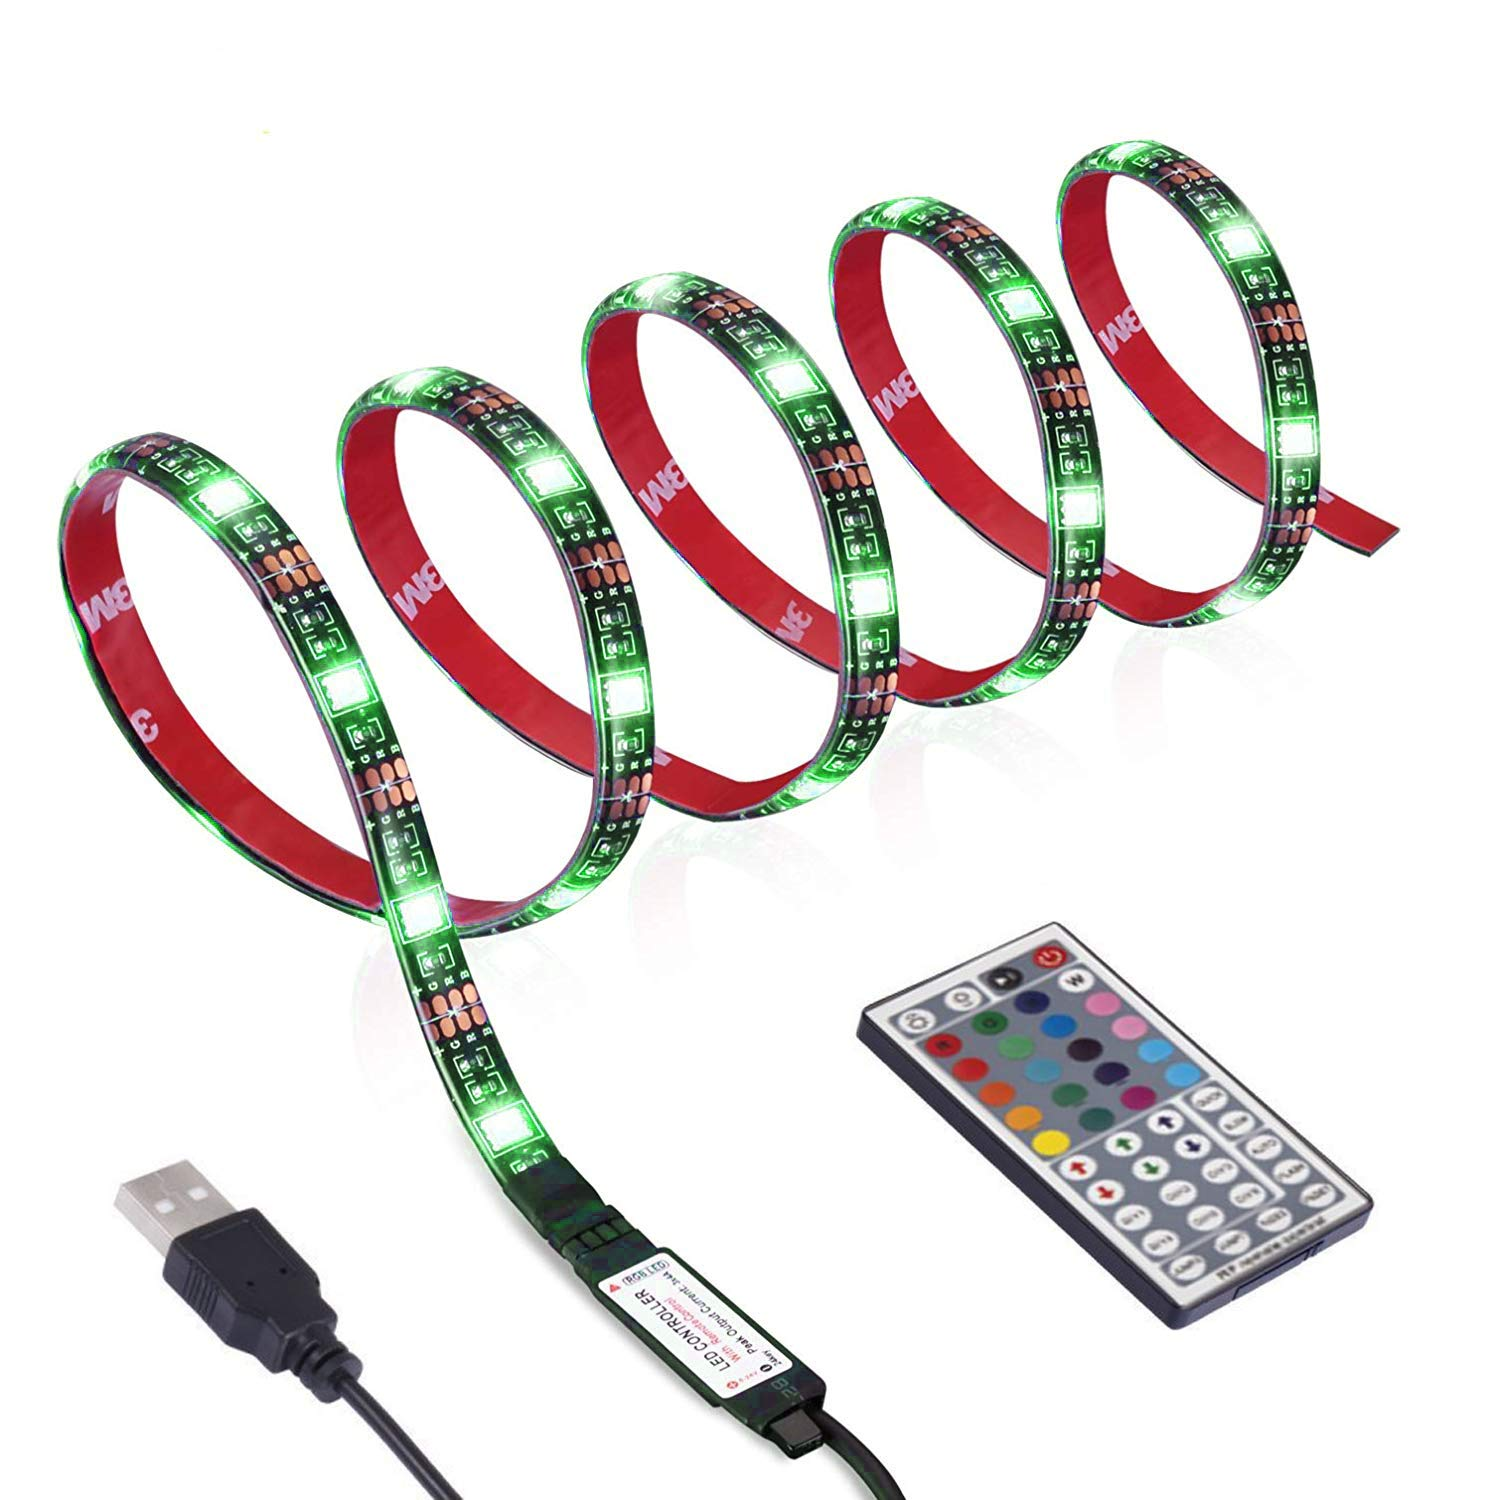 TYGREEN LED Strip LED TV Backlight 118inch(300cm) Bias Lighting Behind 60 65 70 Inch HDTV USB LED Light Strip TV Wall Mount Movie Theater Decor Mood Lights, RF Remote, 20 Colors